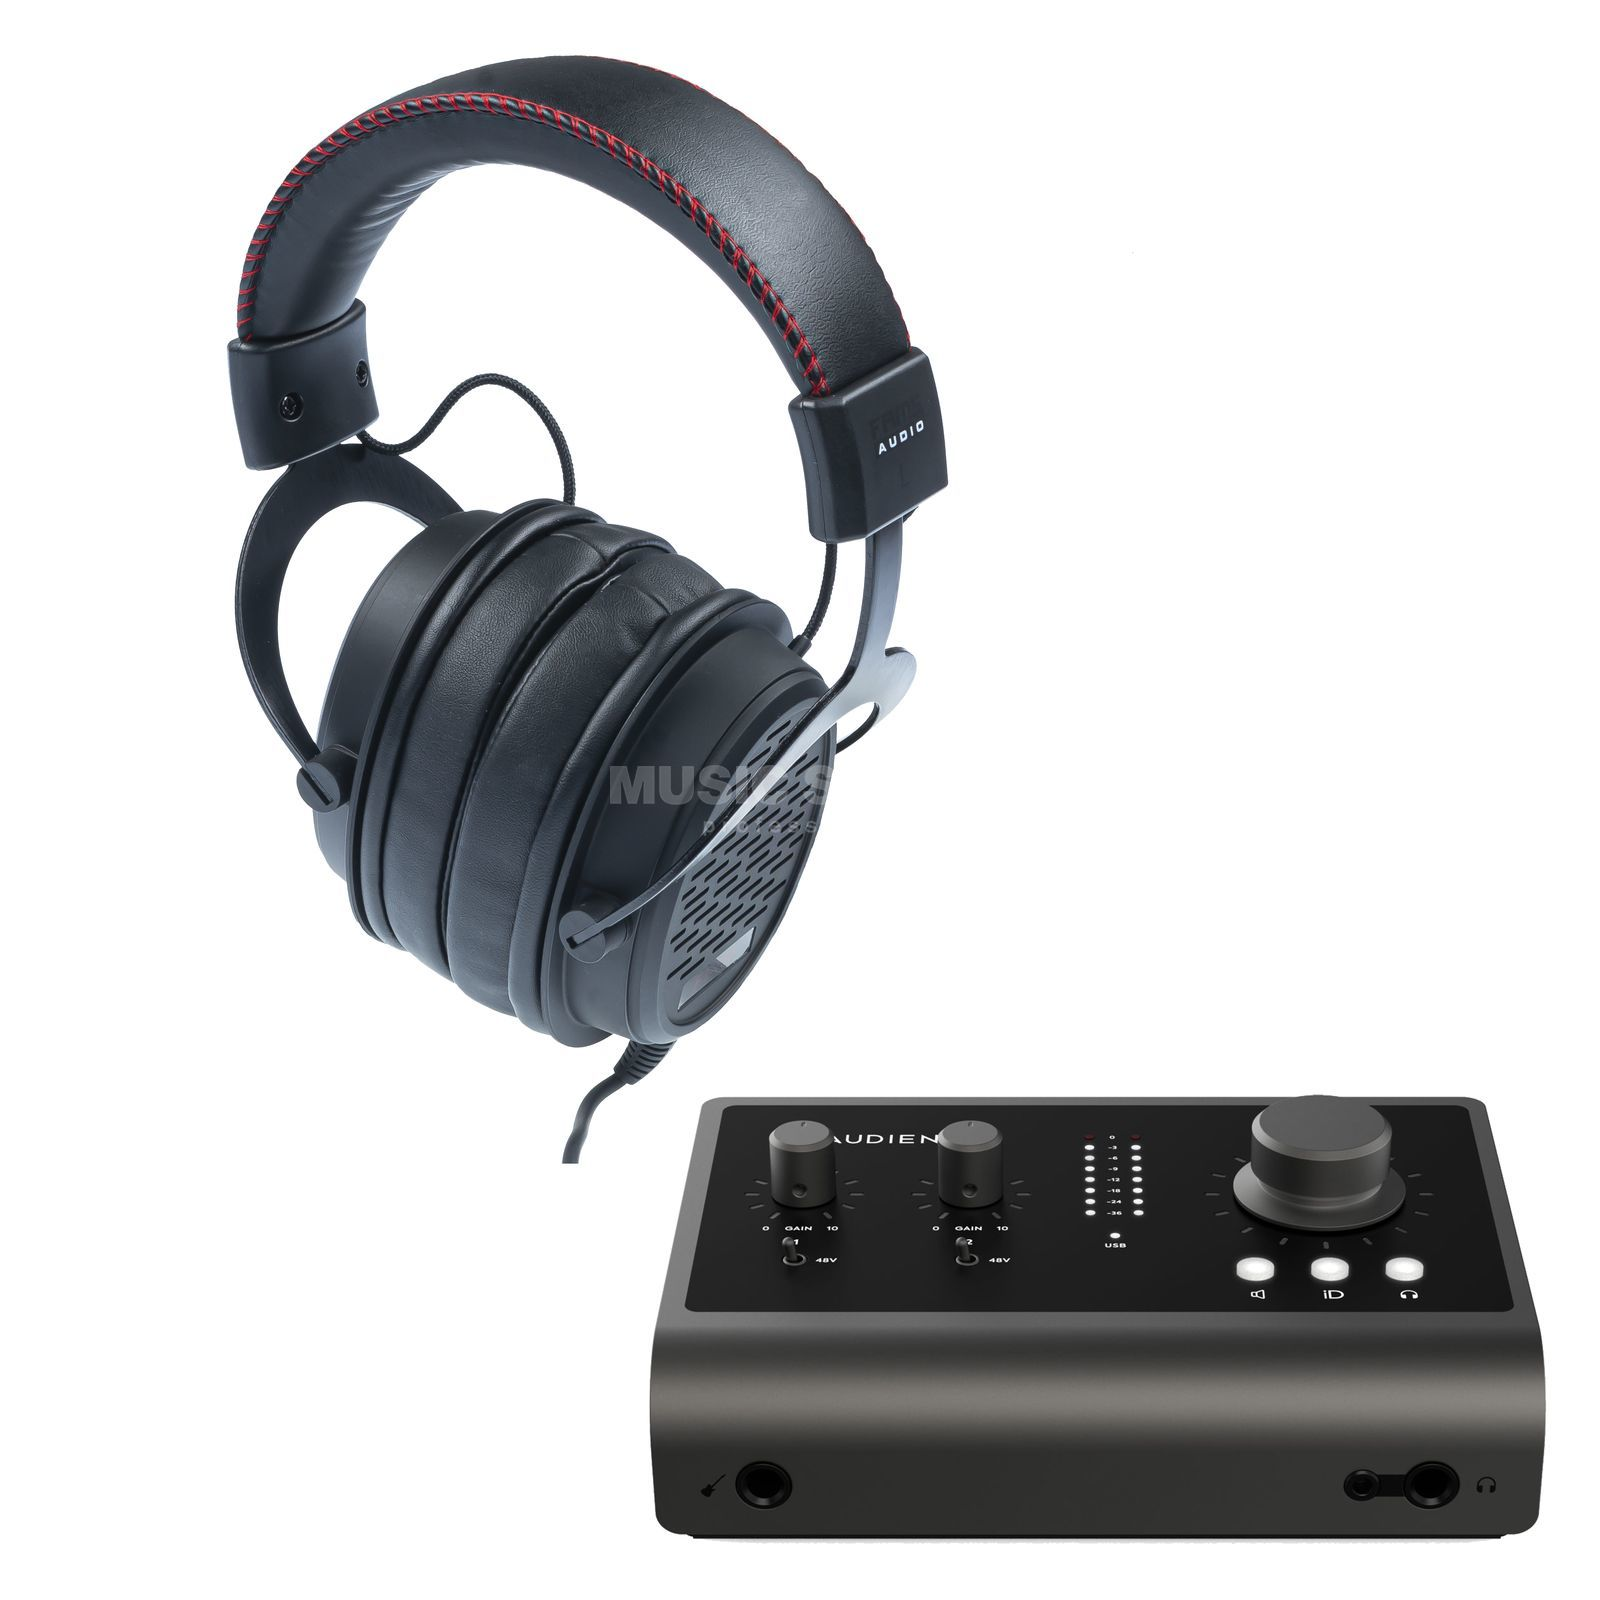 SET ADAM F5 Subwoofer Bundle  Produktbild